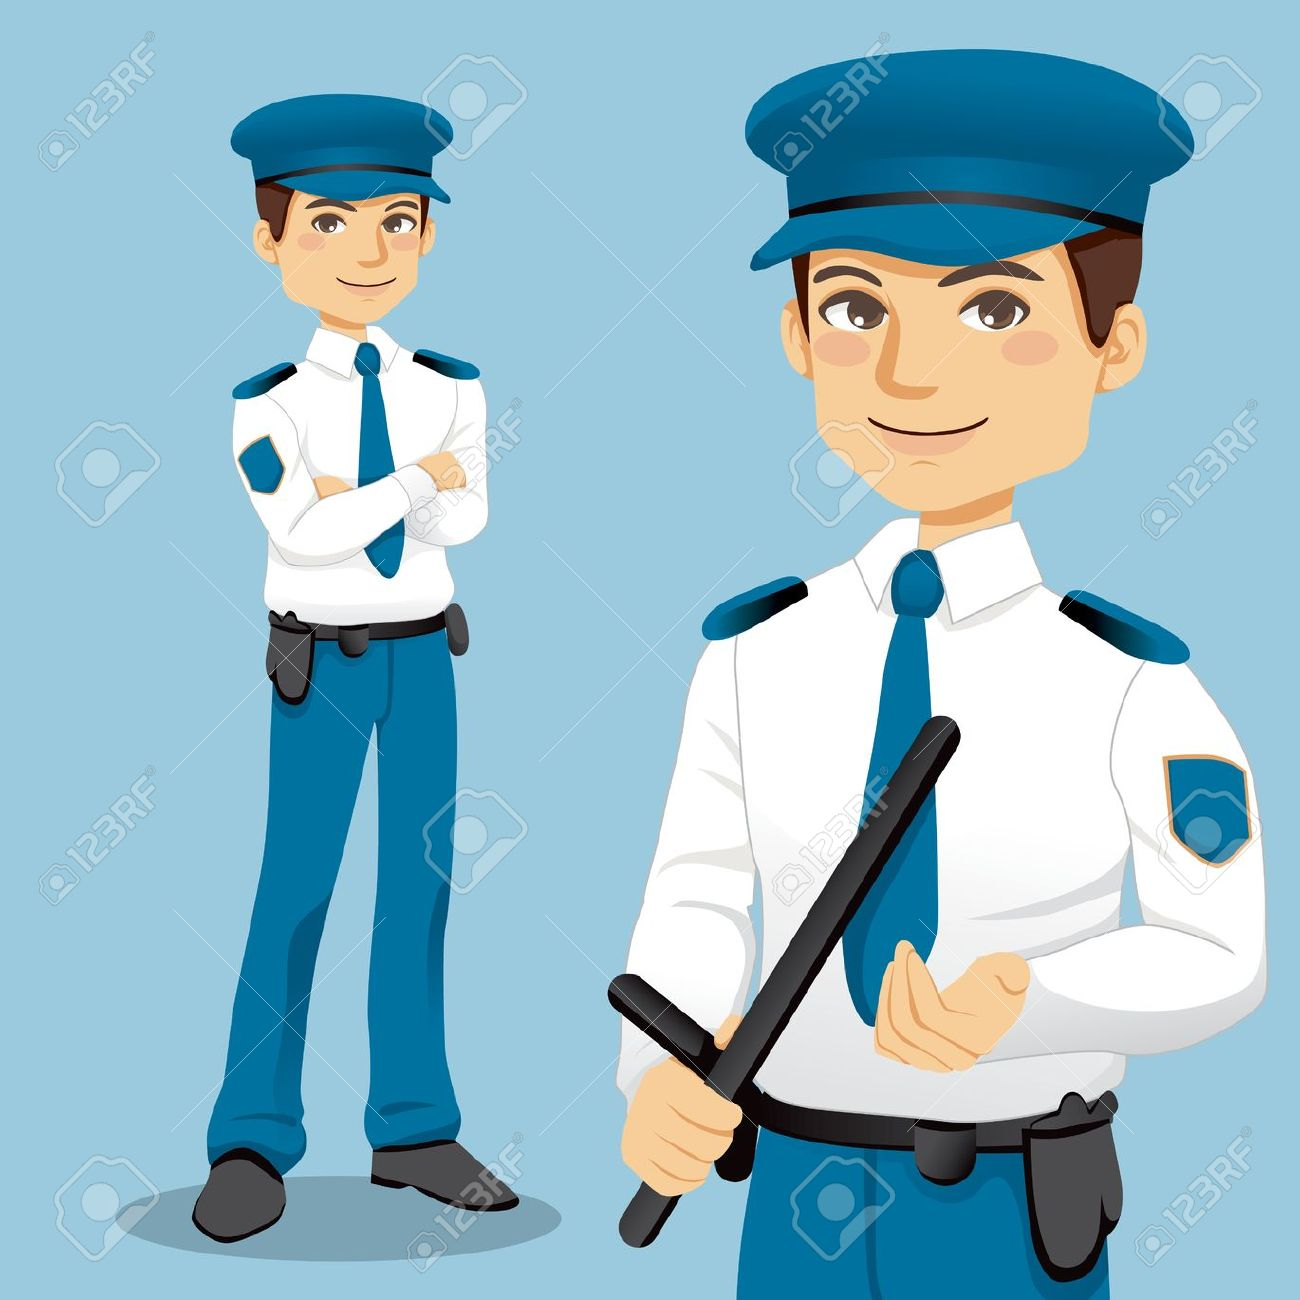 svg free download School security clip art. Guard clipart.